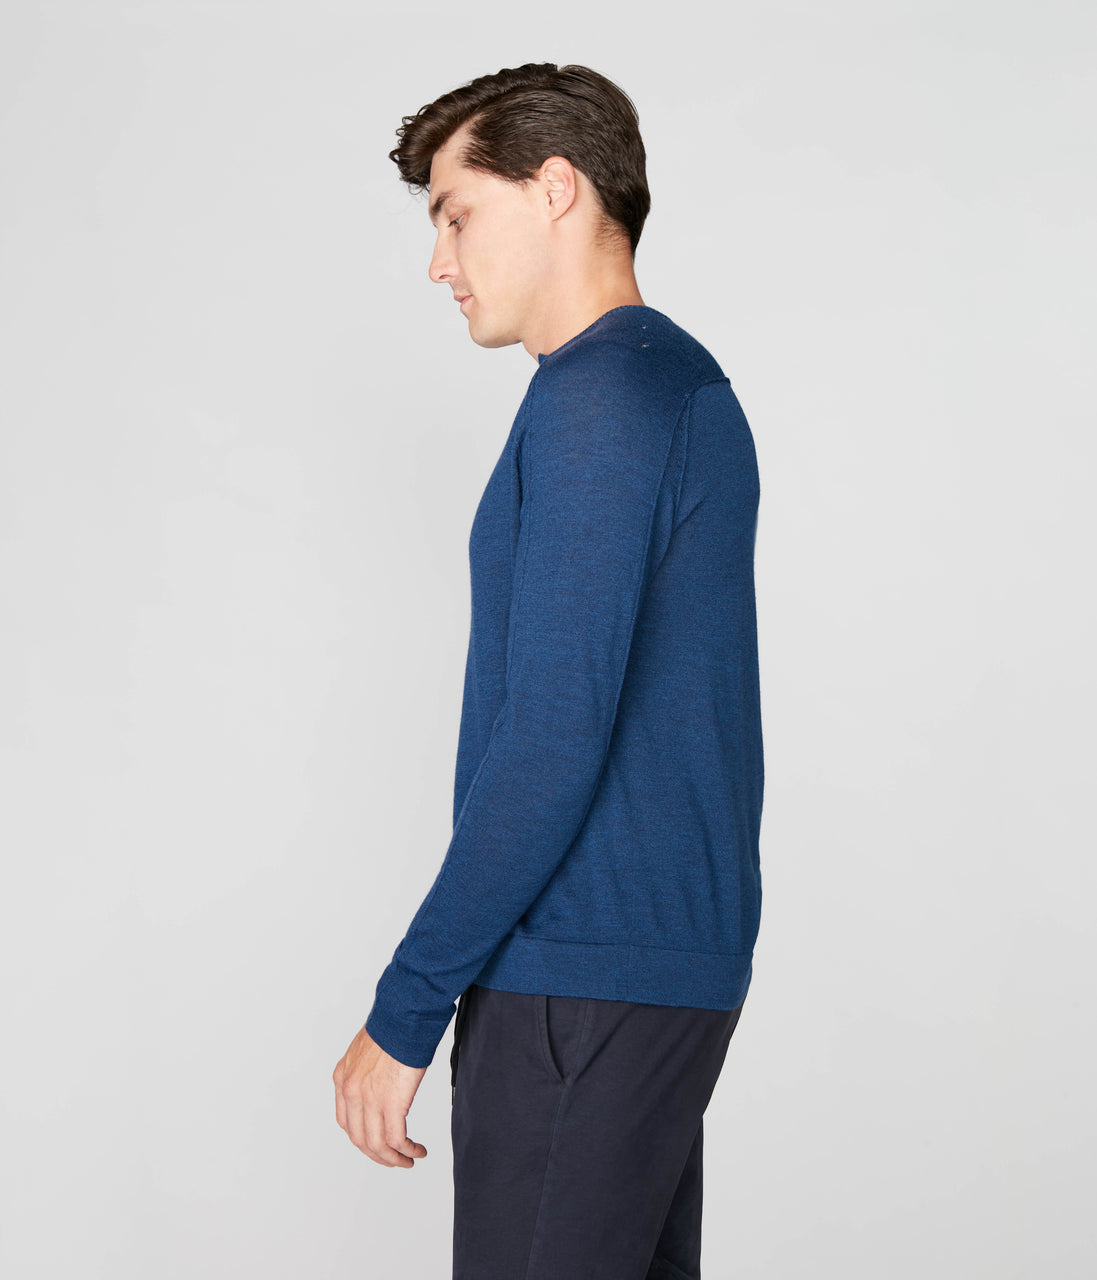 MVP V-Notch Sweater - Indigo - Good Man Brand - MVP V-Notch Sweater - Indigo